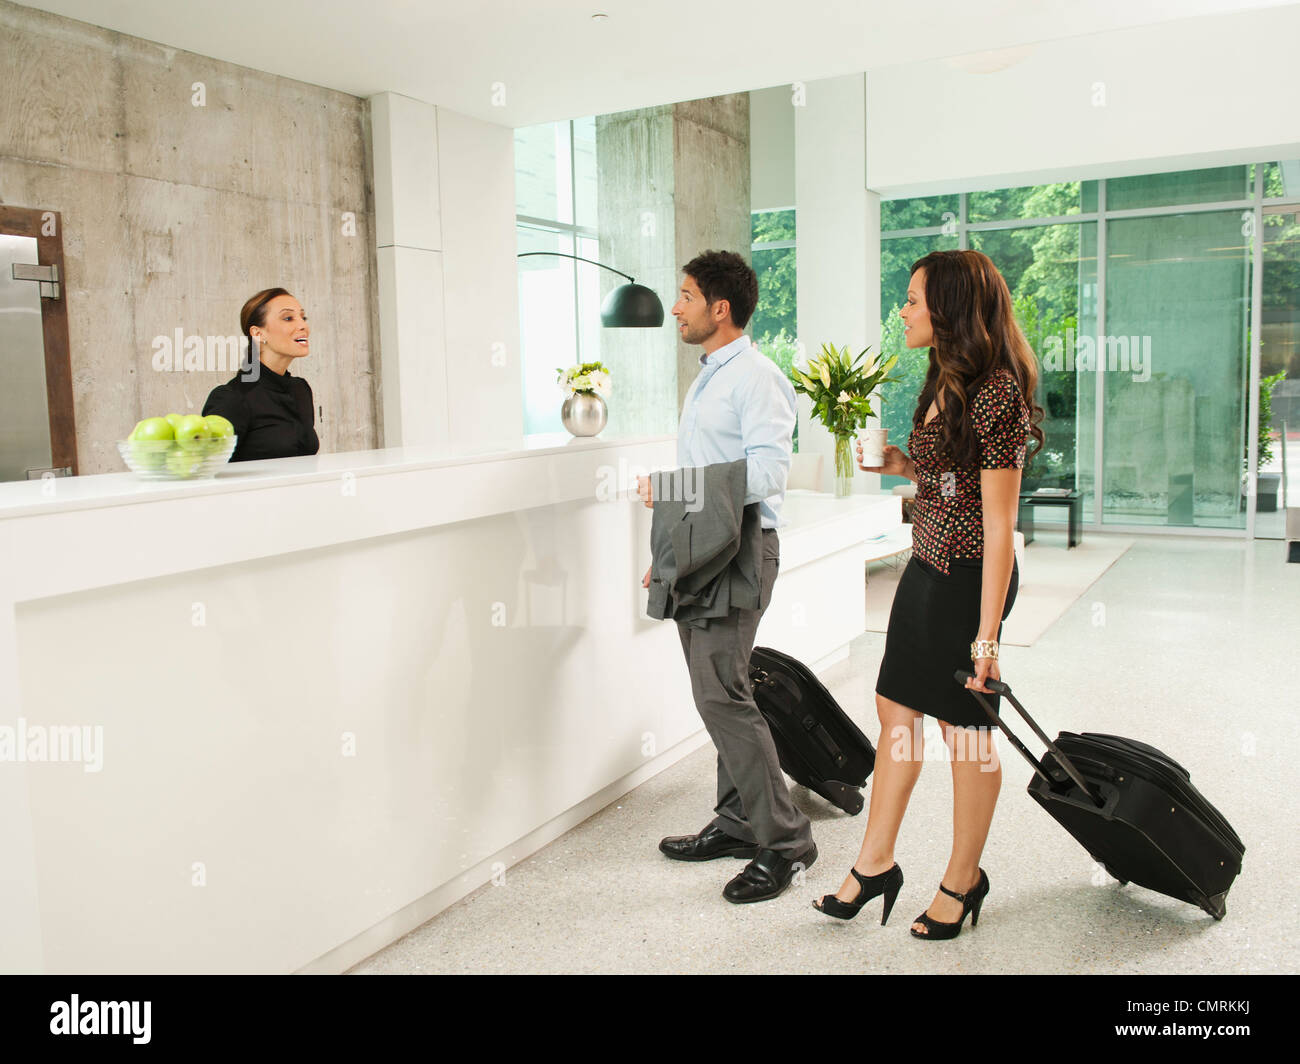 Business people arriving at hotel reception area Stock Photo